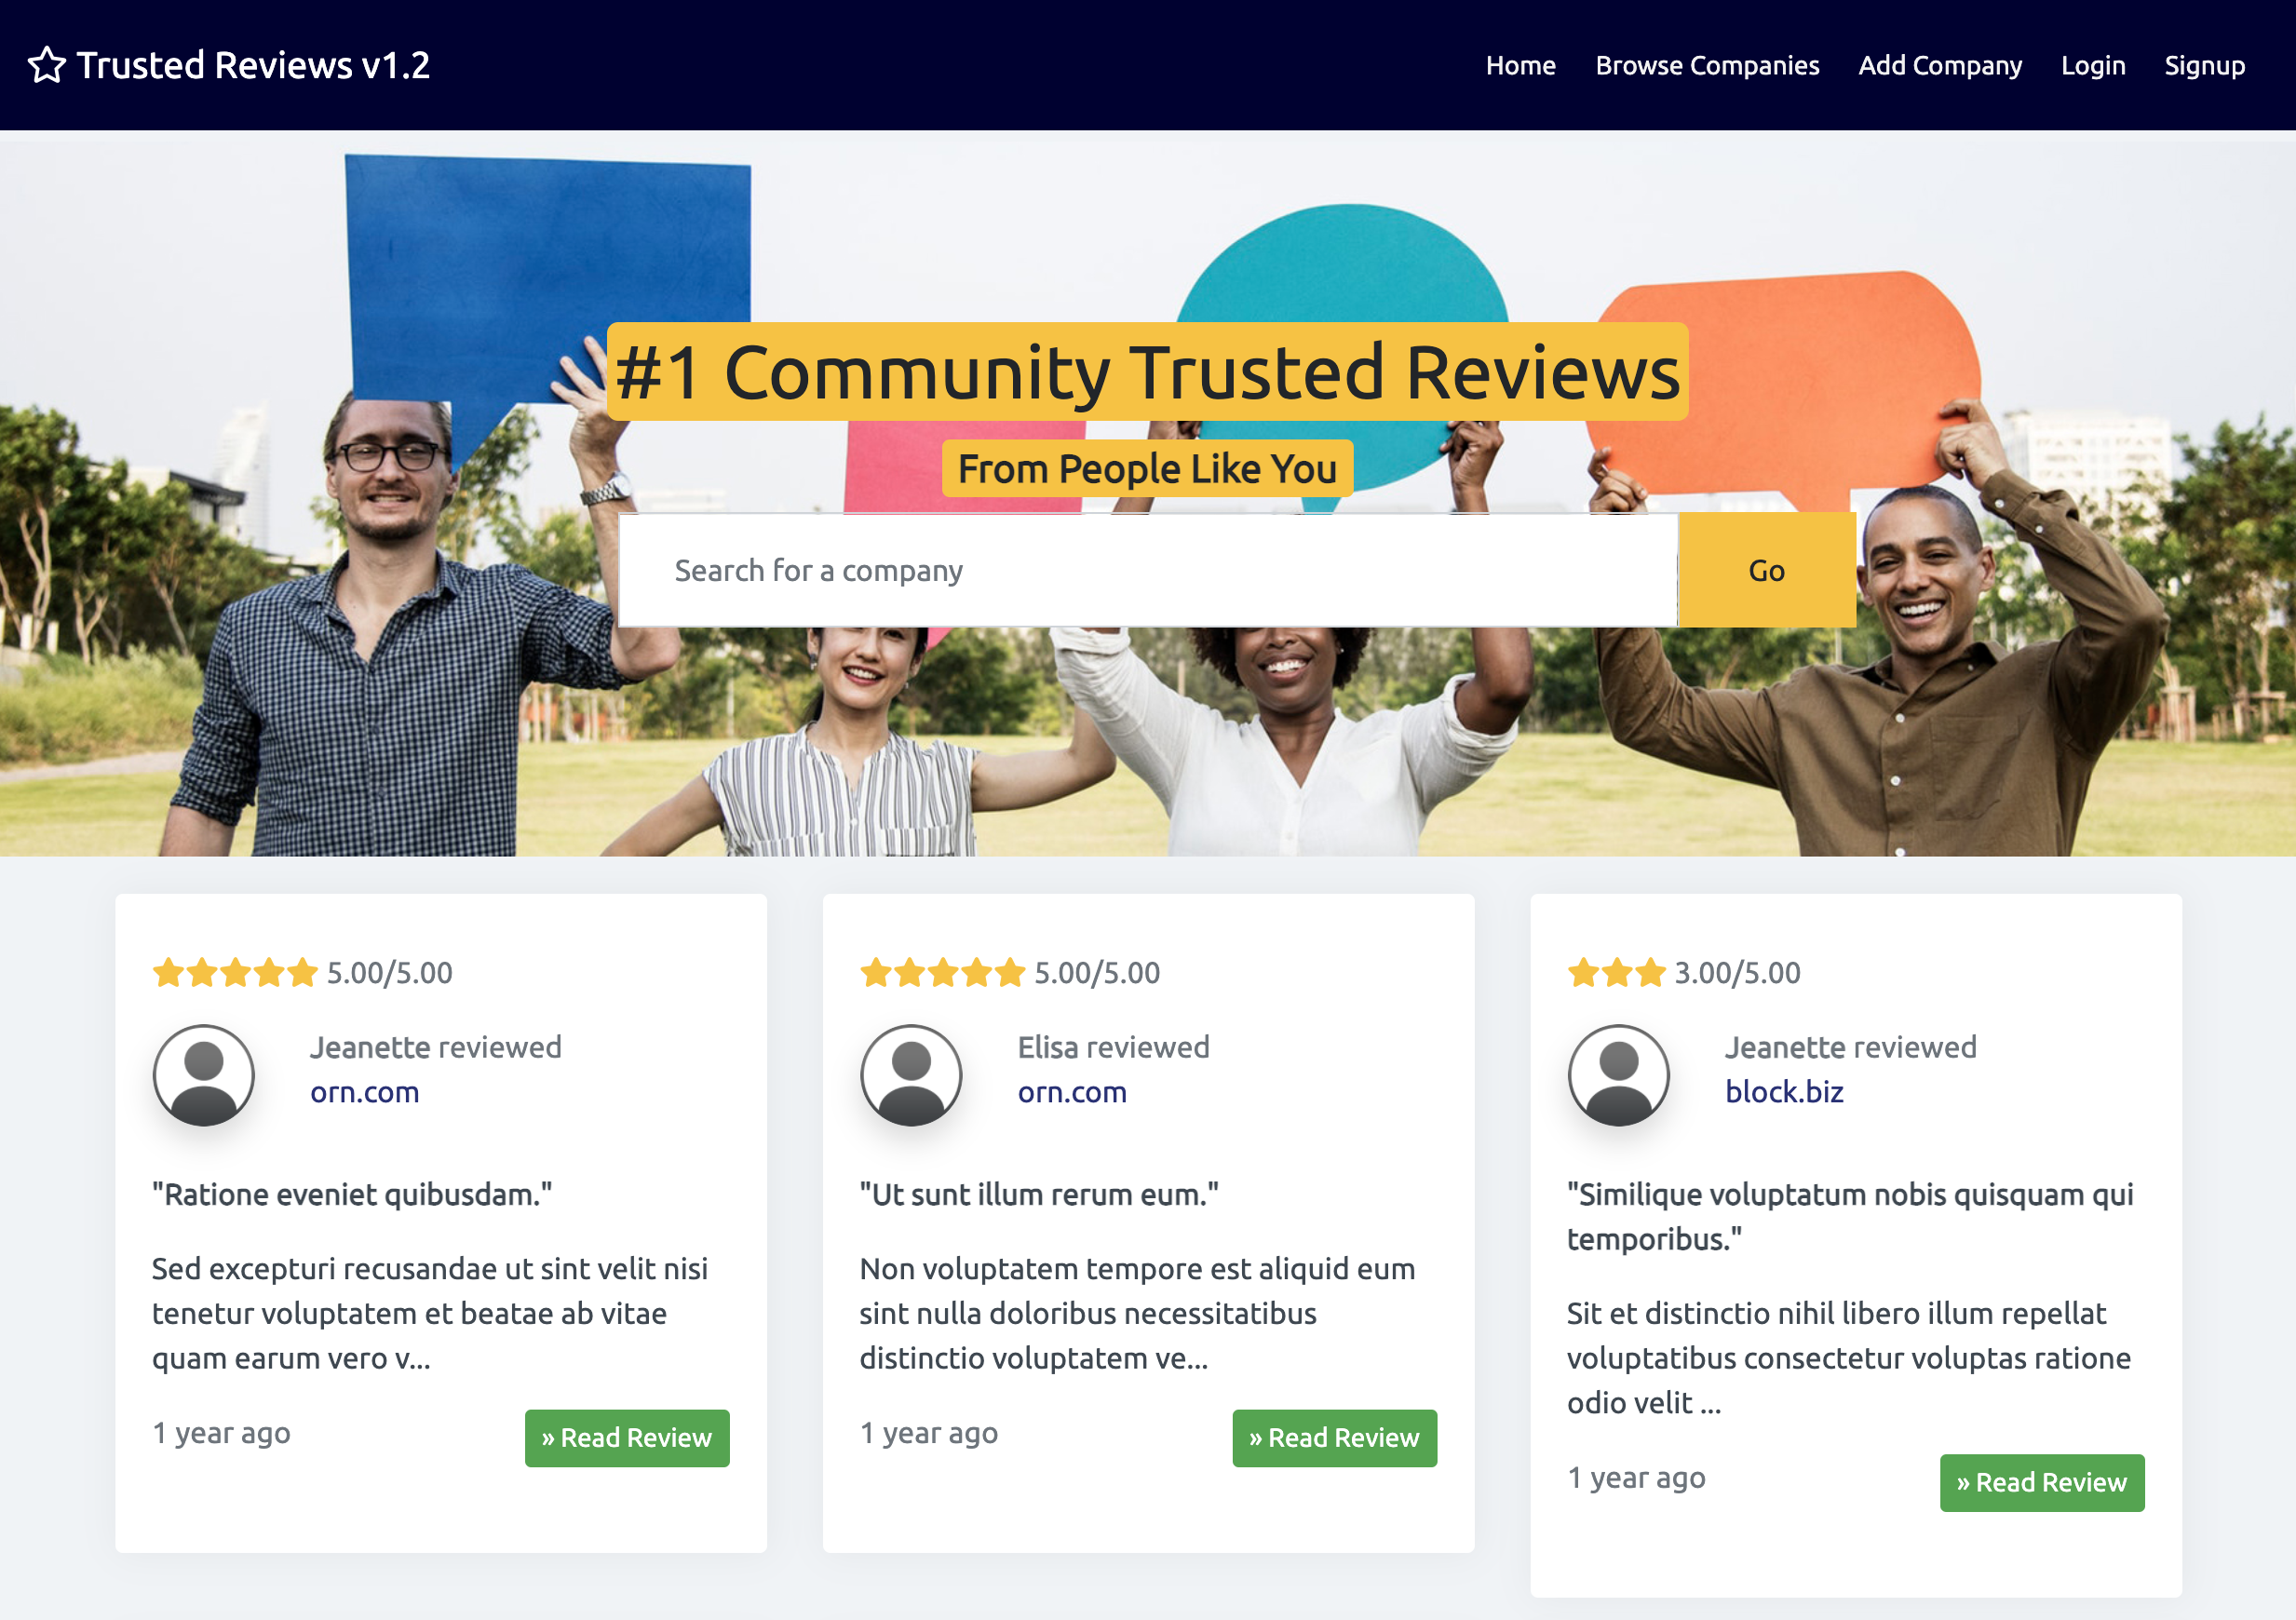 PHP Trusted Reviews - TrustPilot Clone - Cover Image